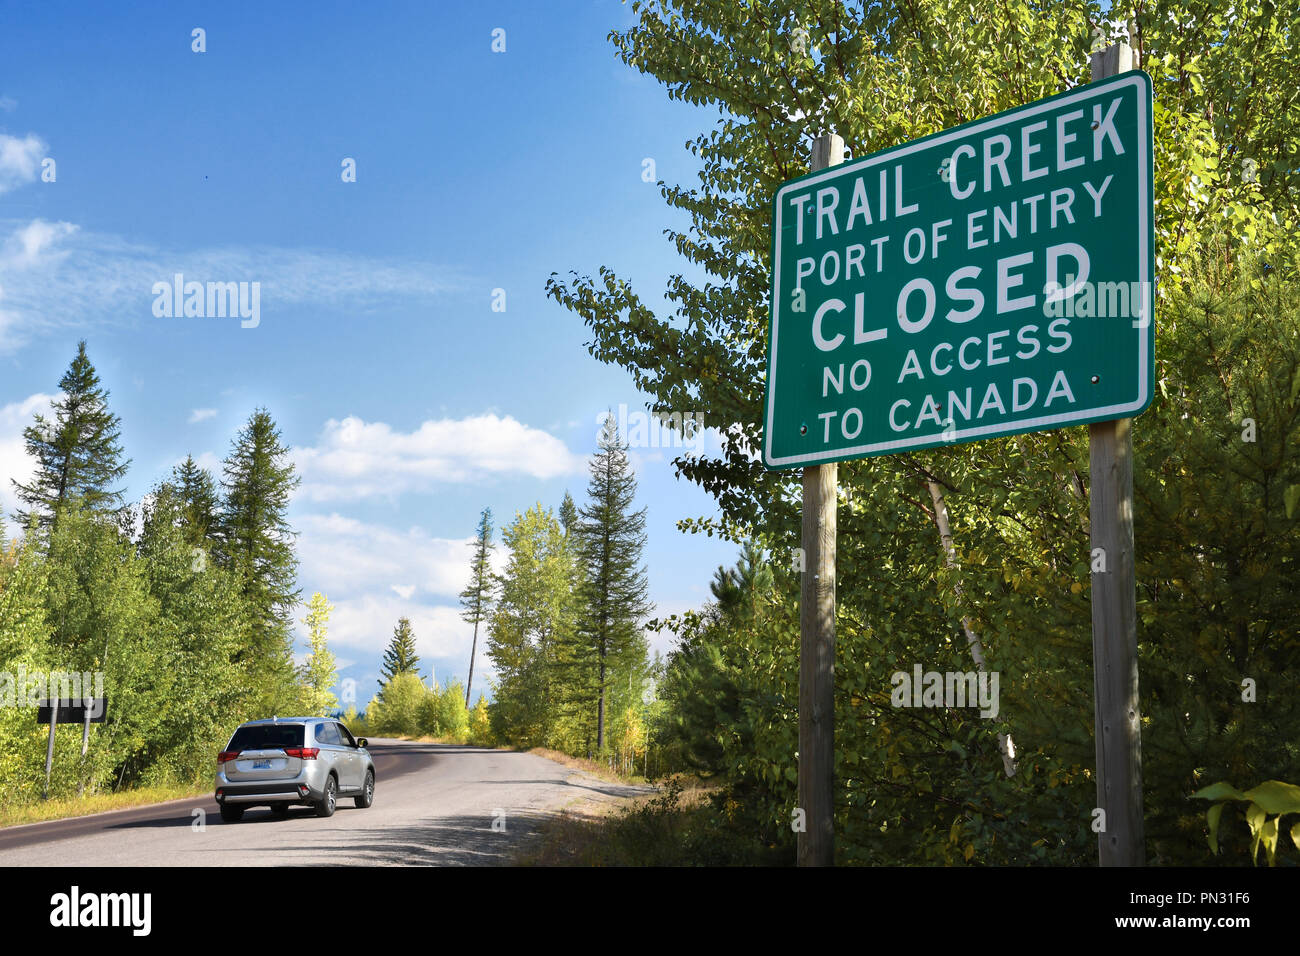 STATE HIGHWAY 486, MONTANA, USA: September 9, 2018: An SUV drives past a sign stating the Trail Creek Port of Entry is closed with no access to Canada Stock Photo